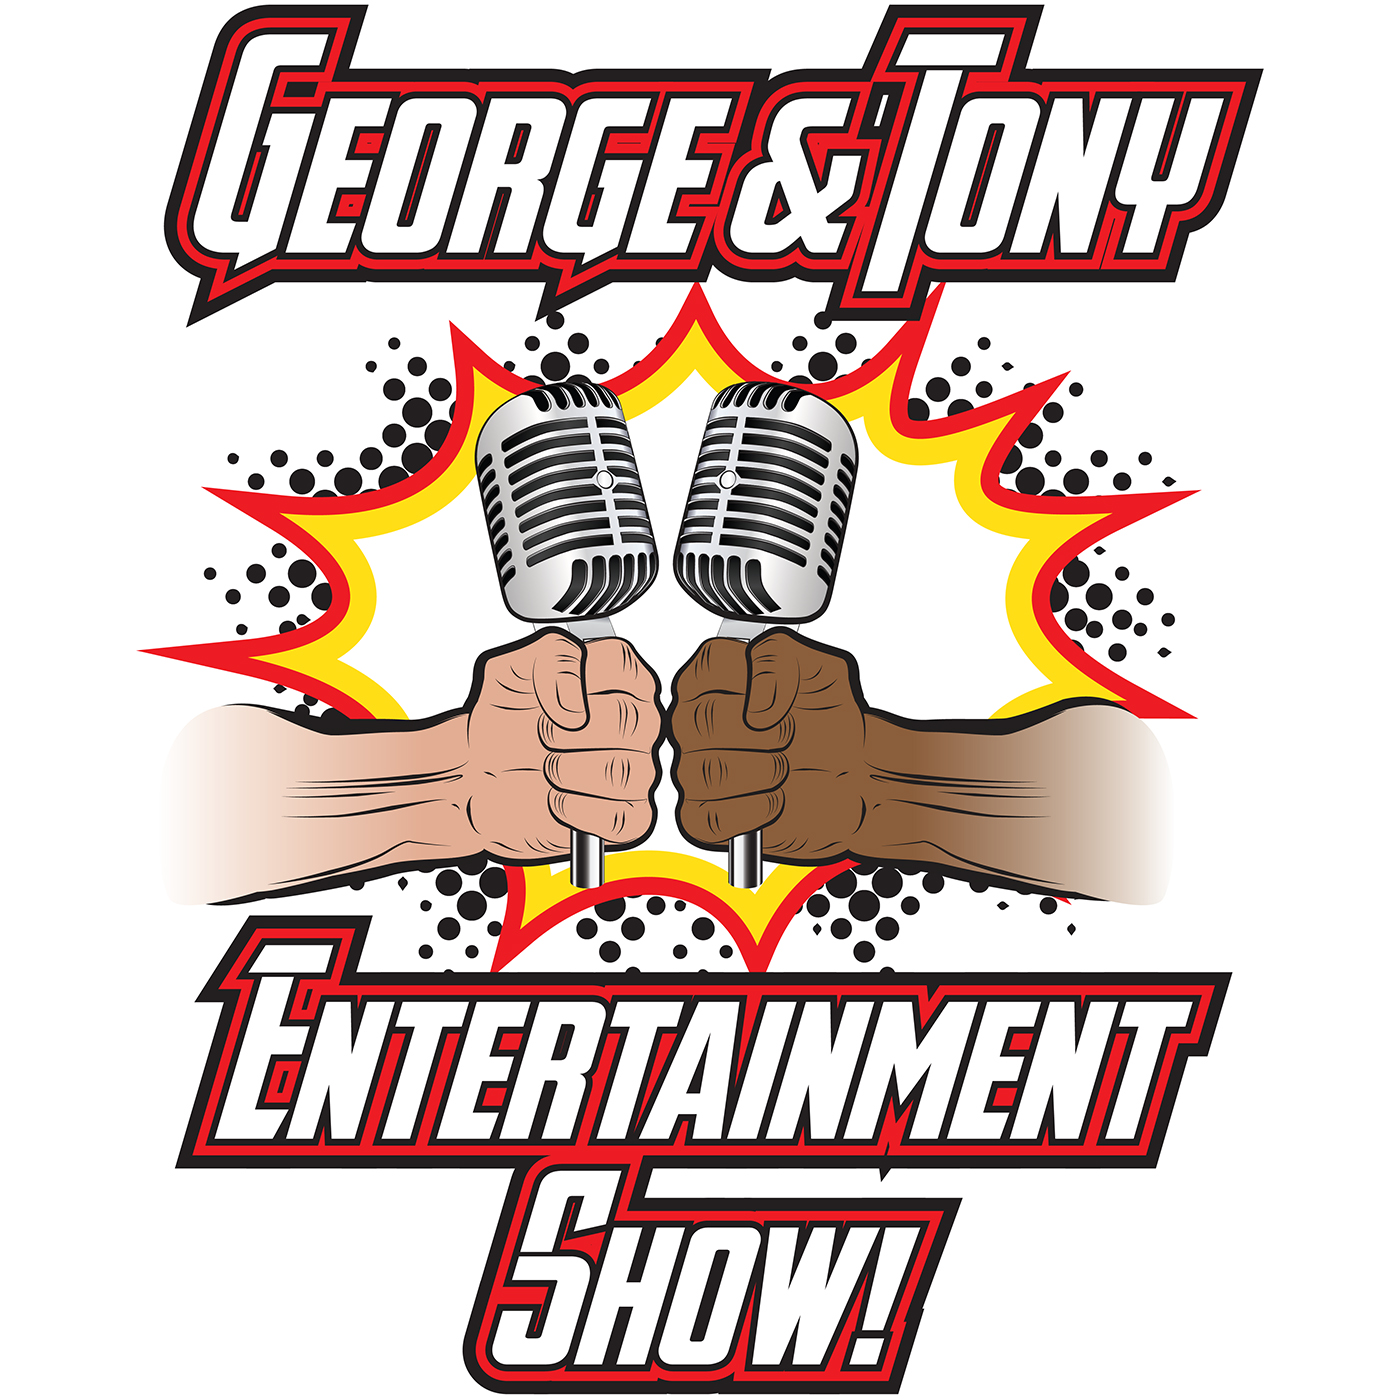 George and Tony Entertainment Show #151